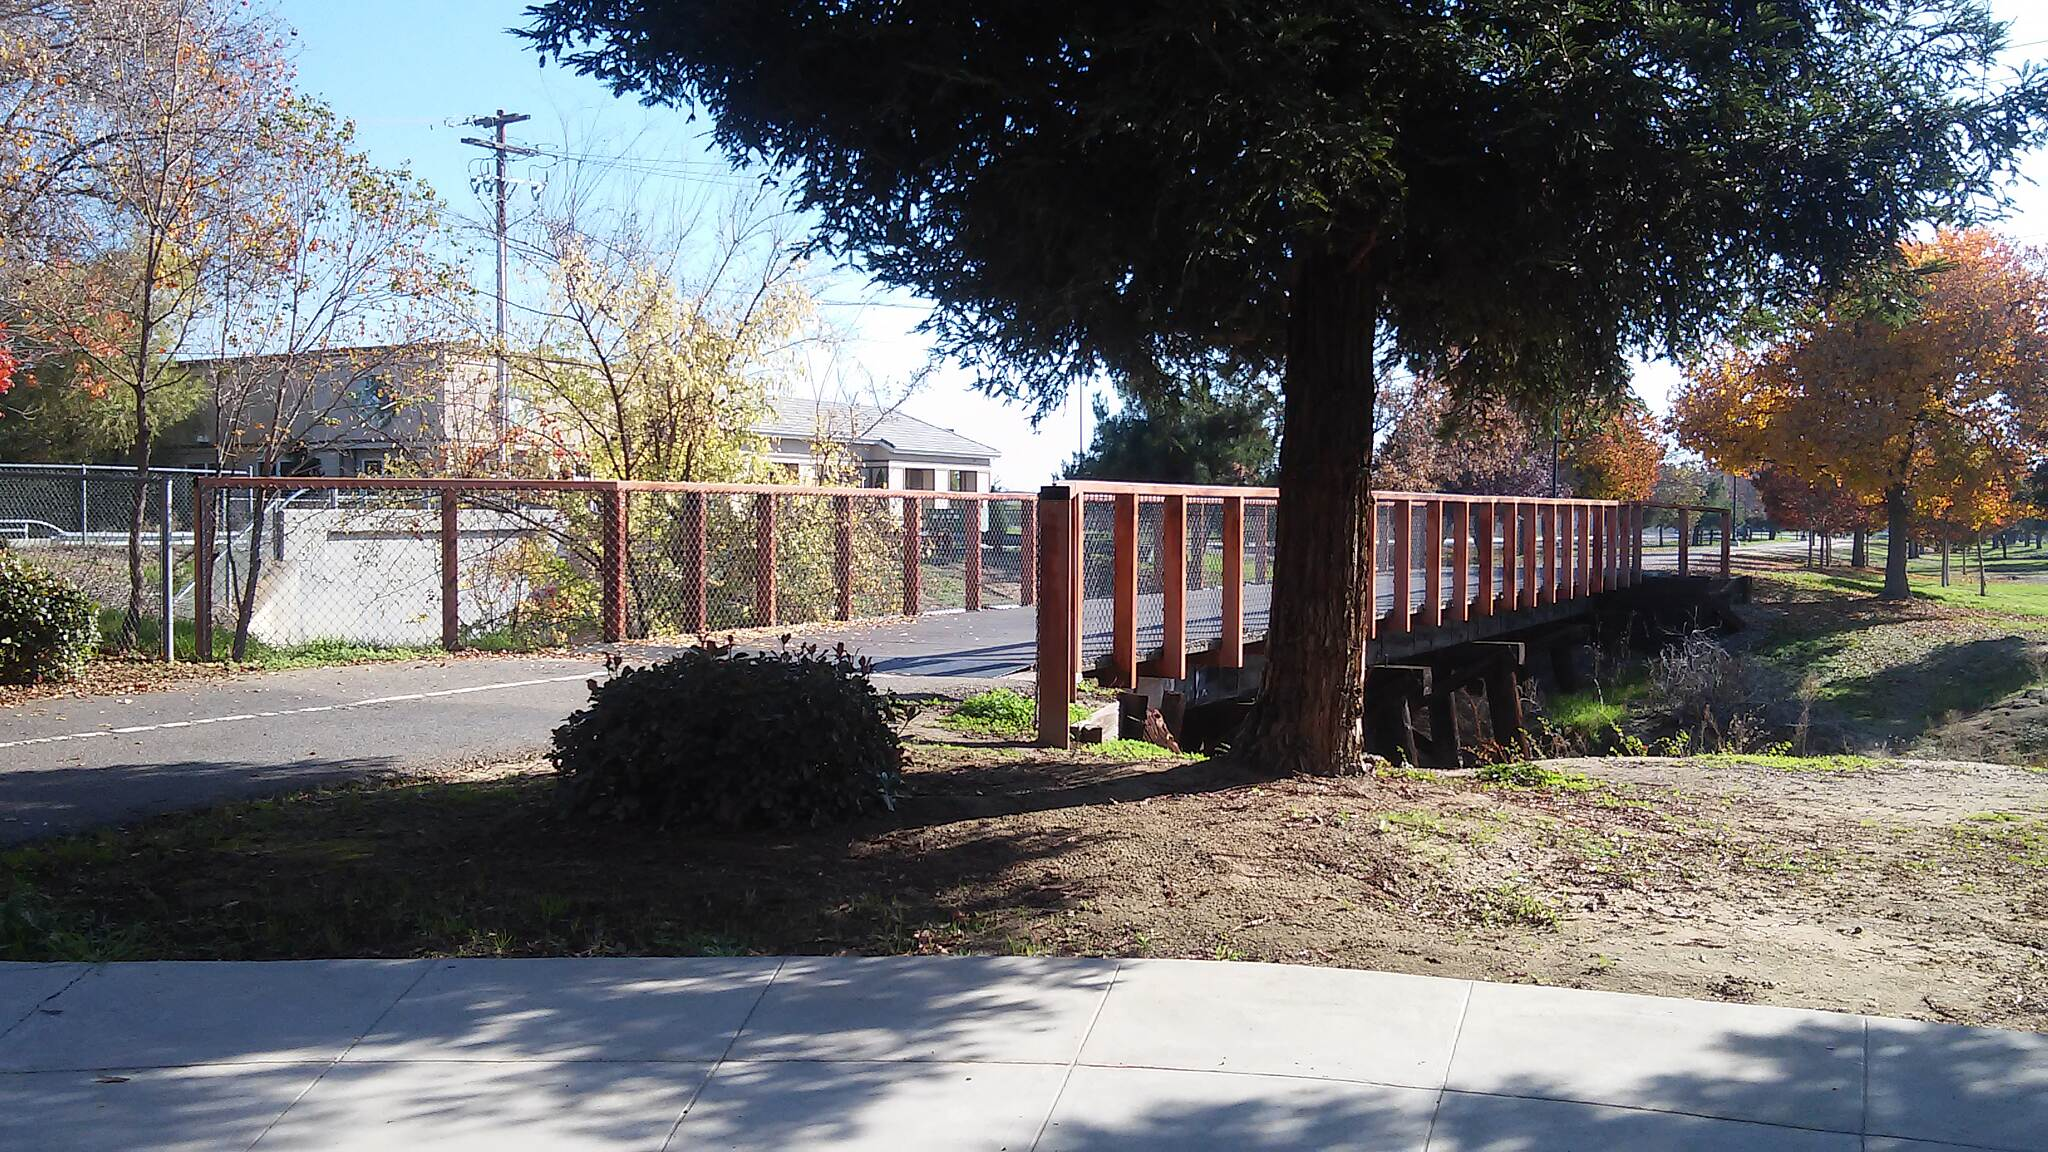 Clovis Old Town Trail at dry creek intersection little bridge on the old town trail branching off into the dry creek trail at the intersection